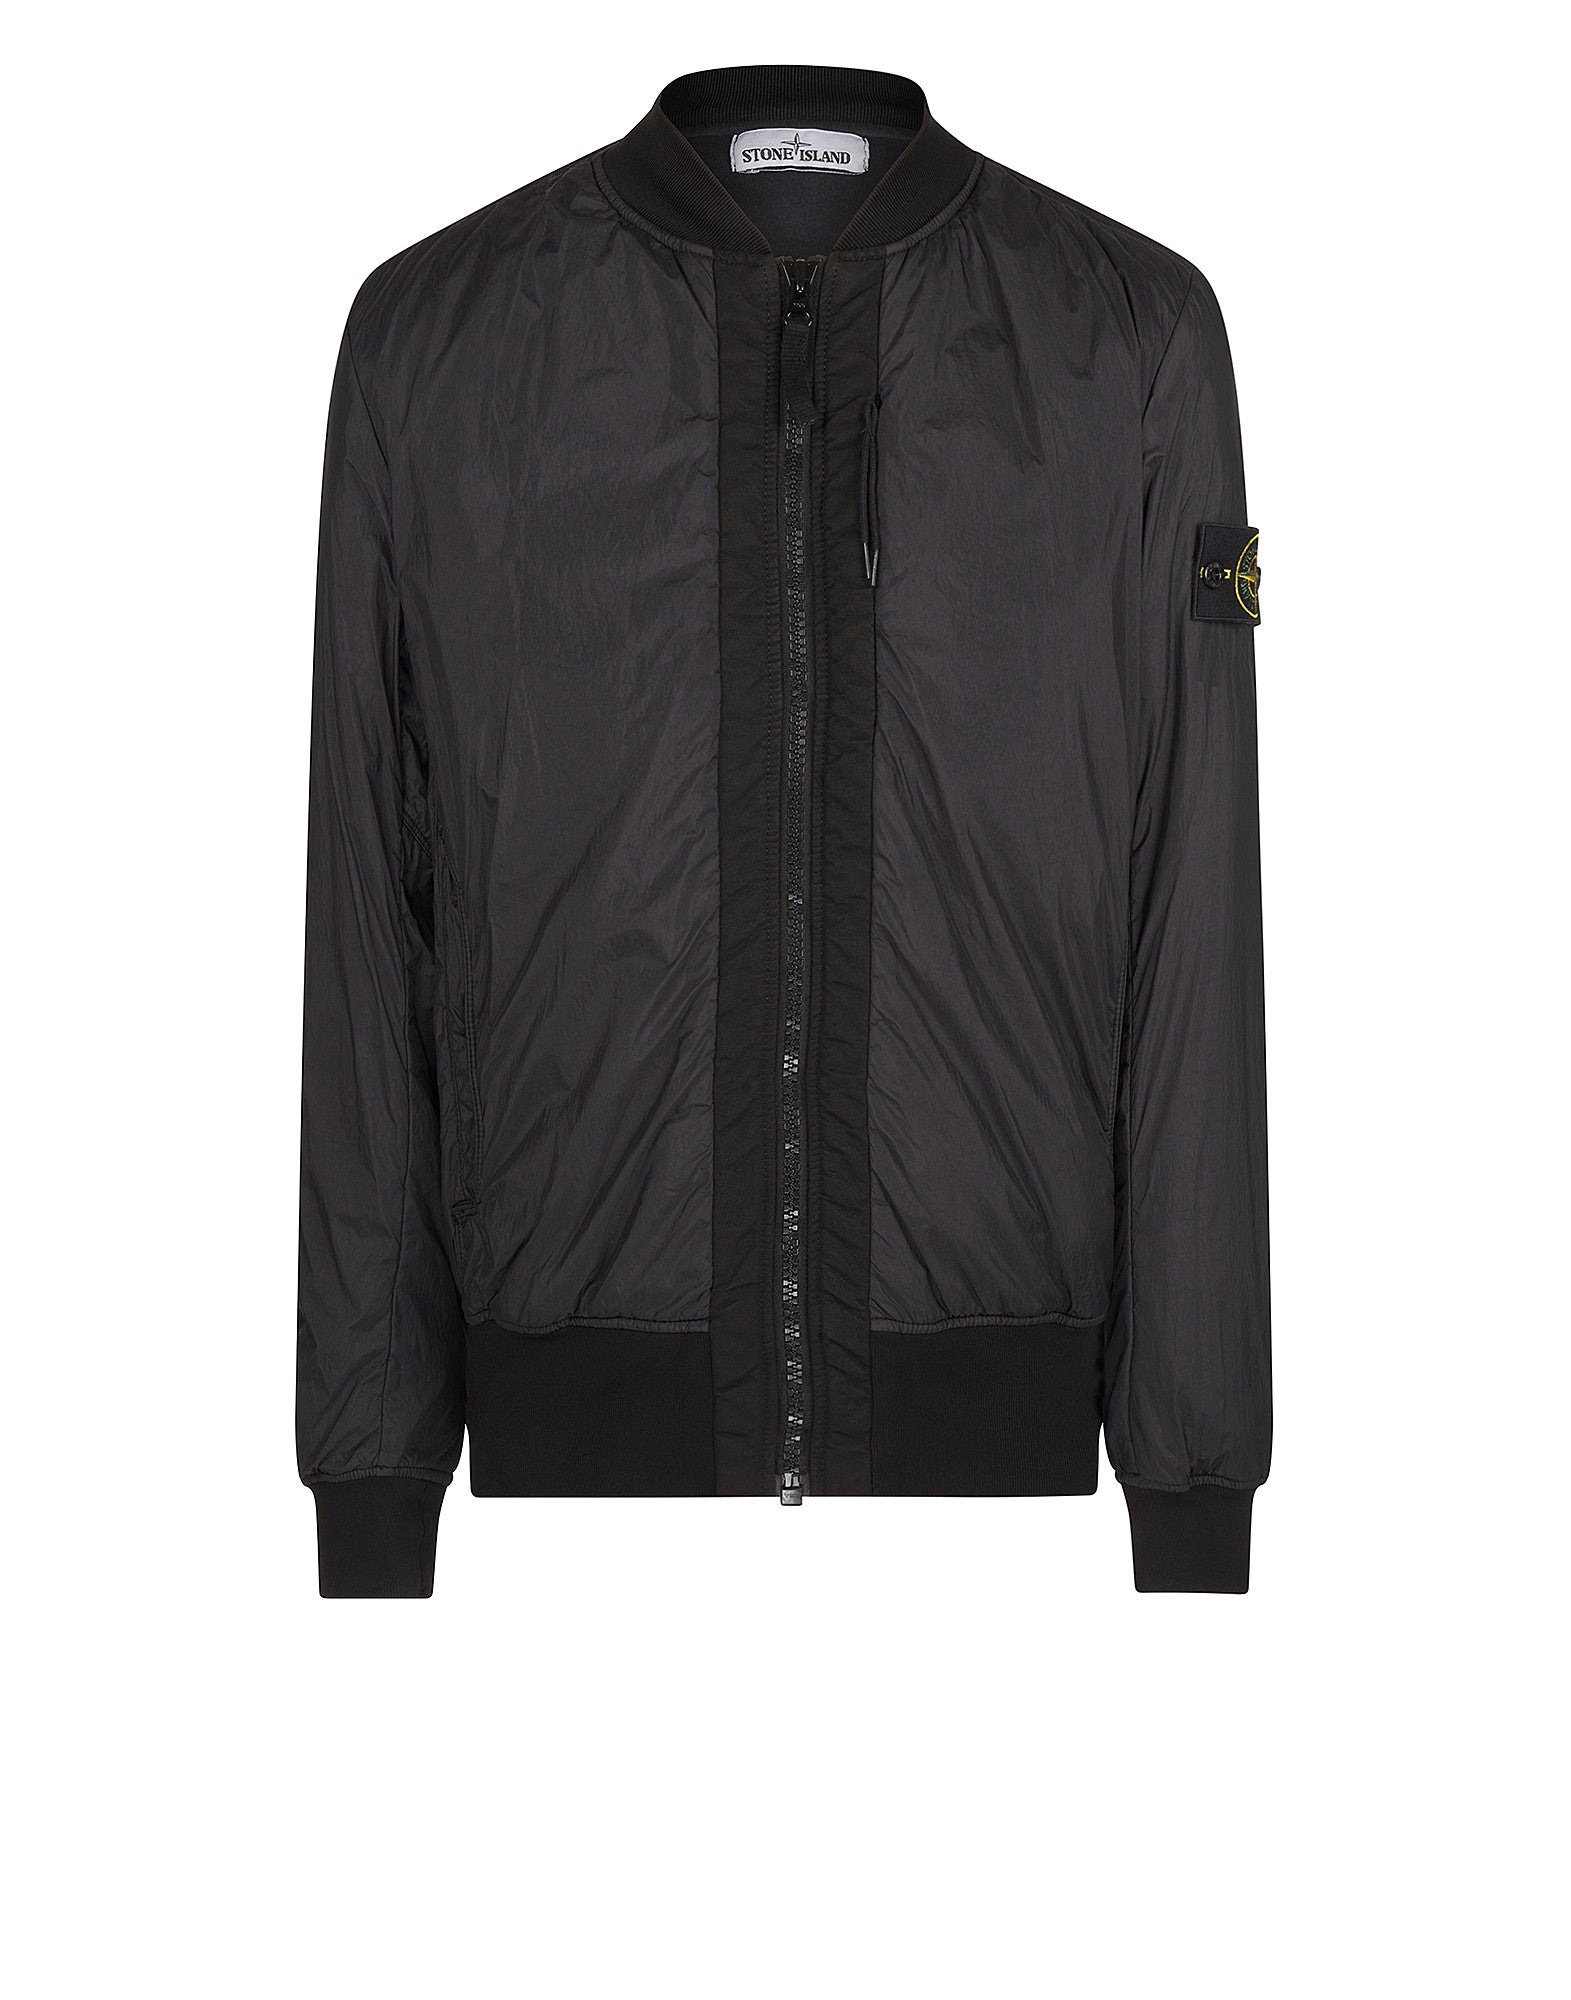 Q0923 Bomber in Charcoal